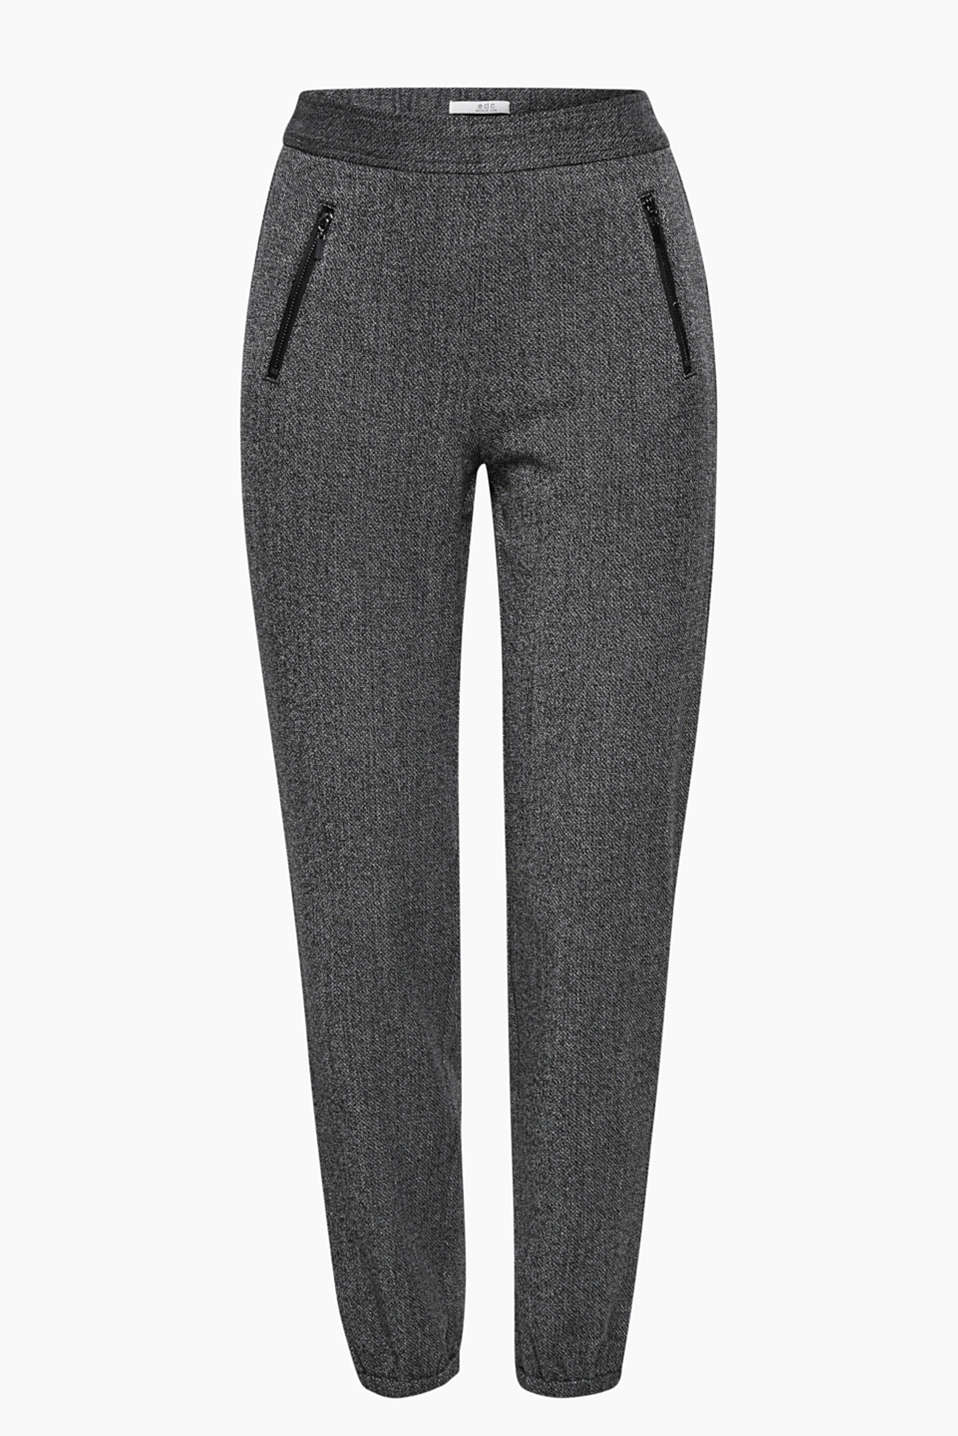 Comfortable and versatile cropped tracksuit bottoms in a smart and sporty look